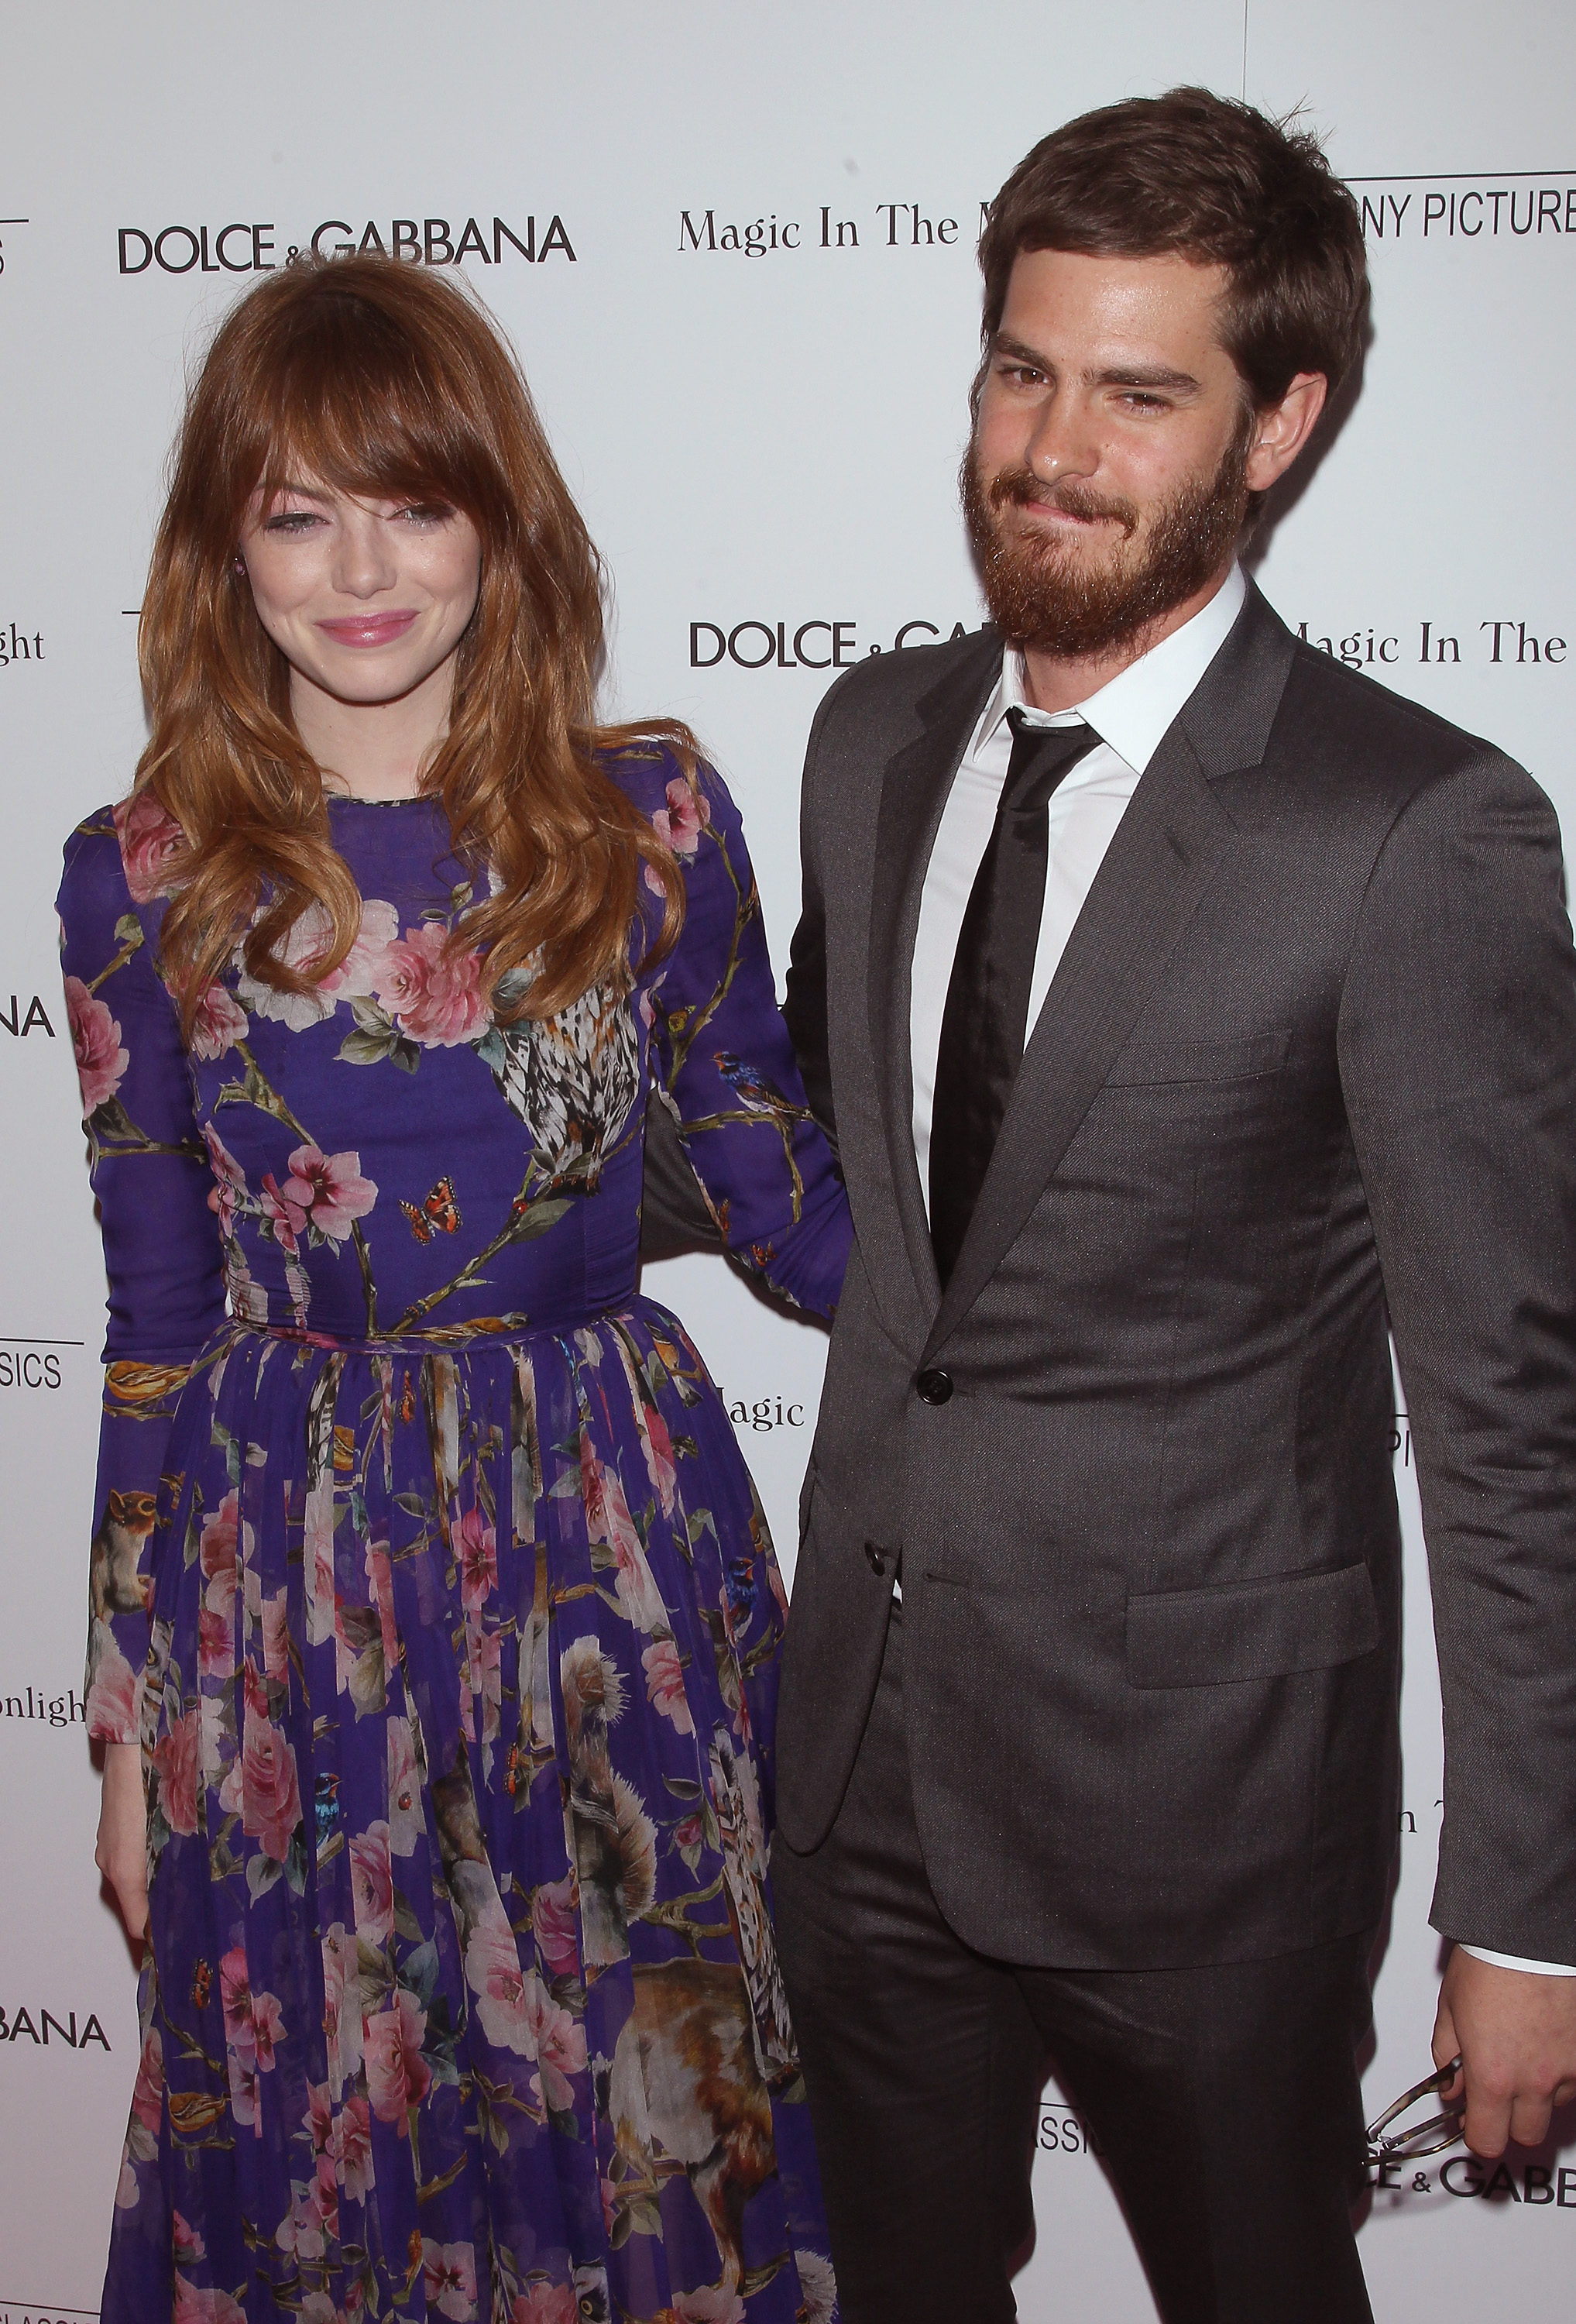 Who is andrew garfield dating now